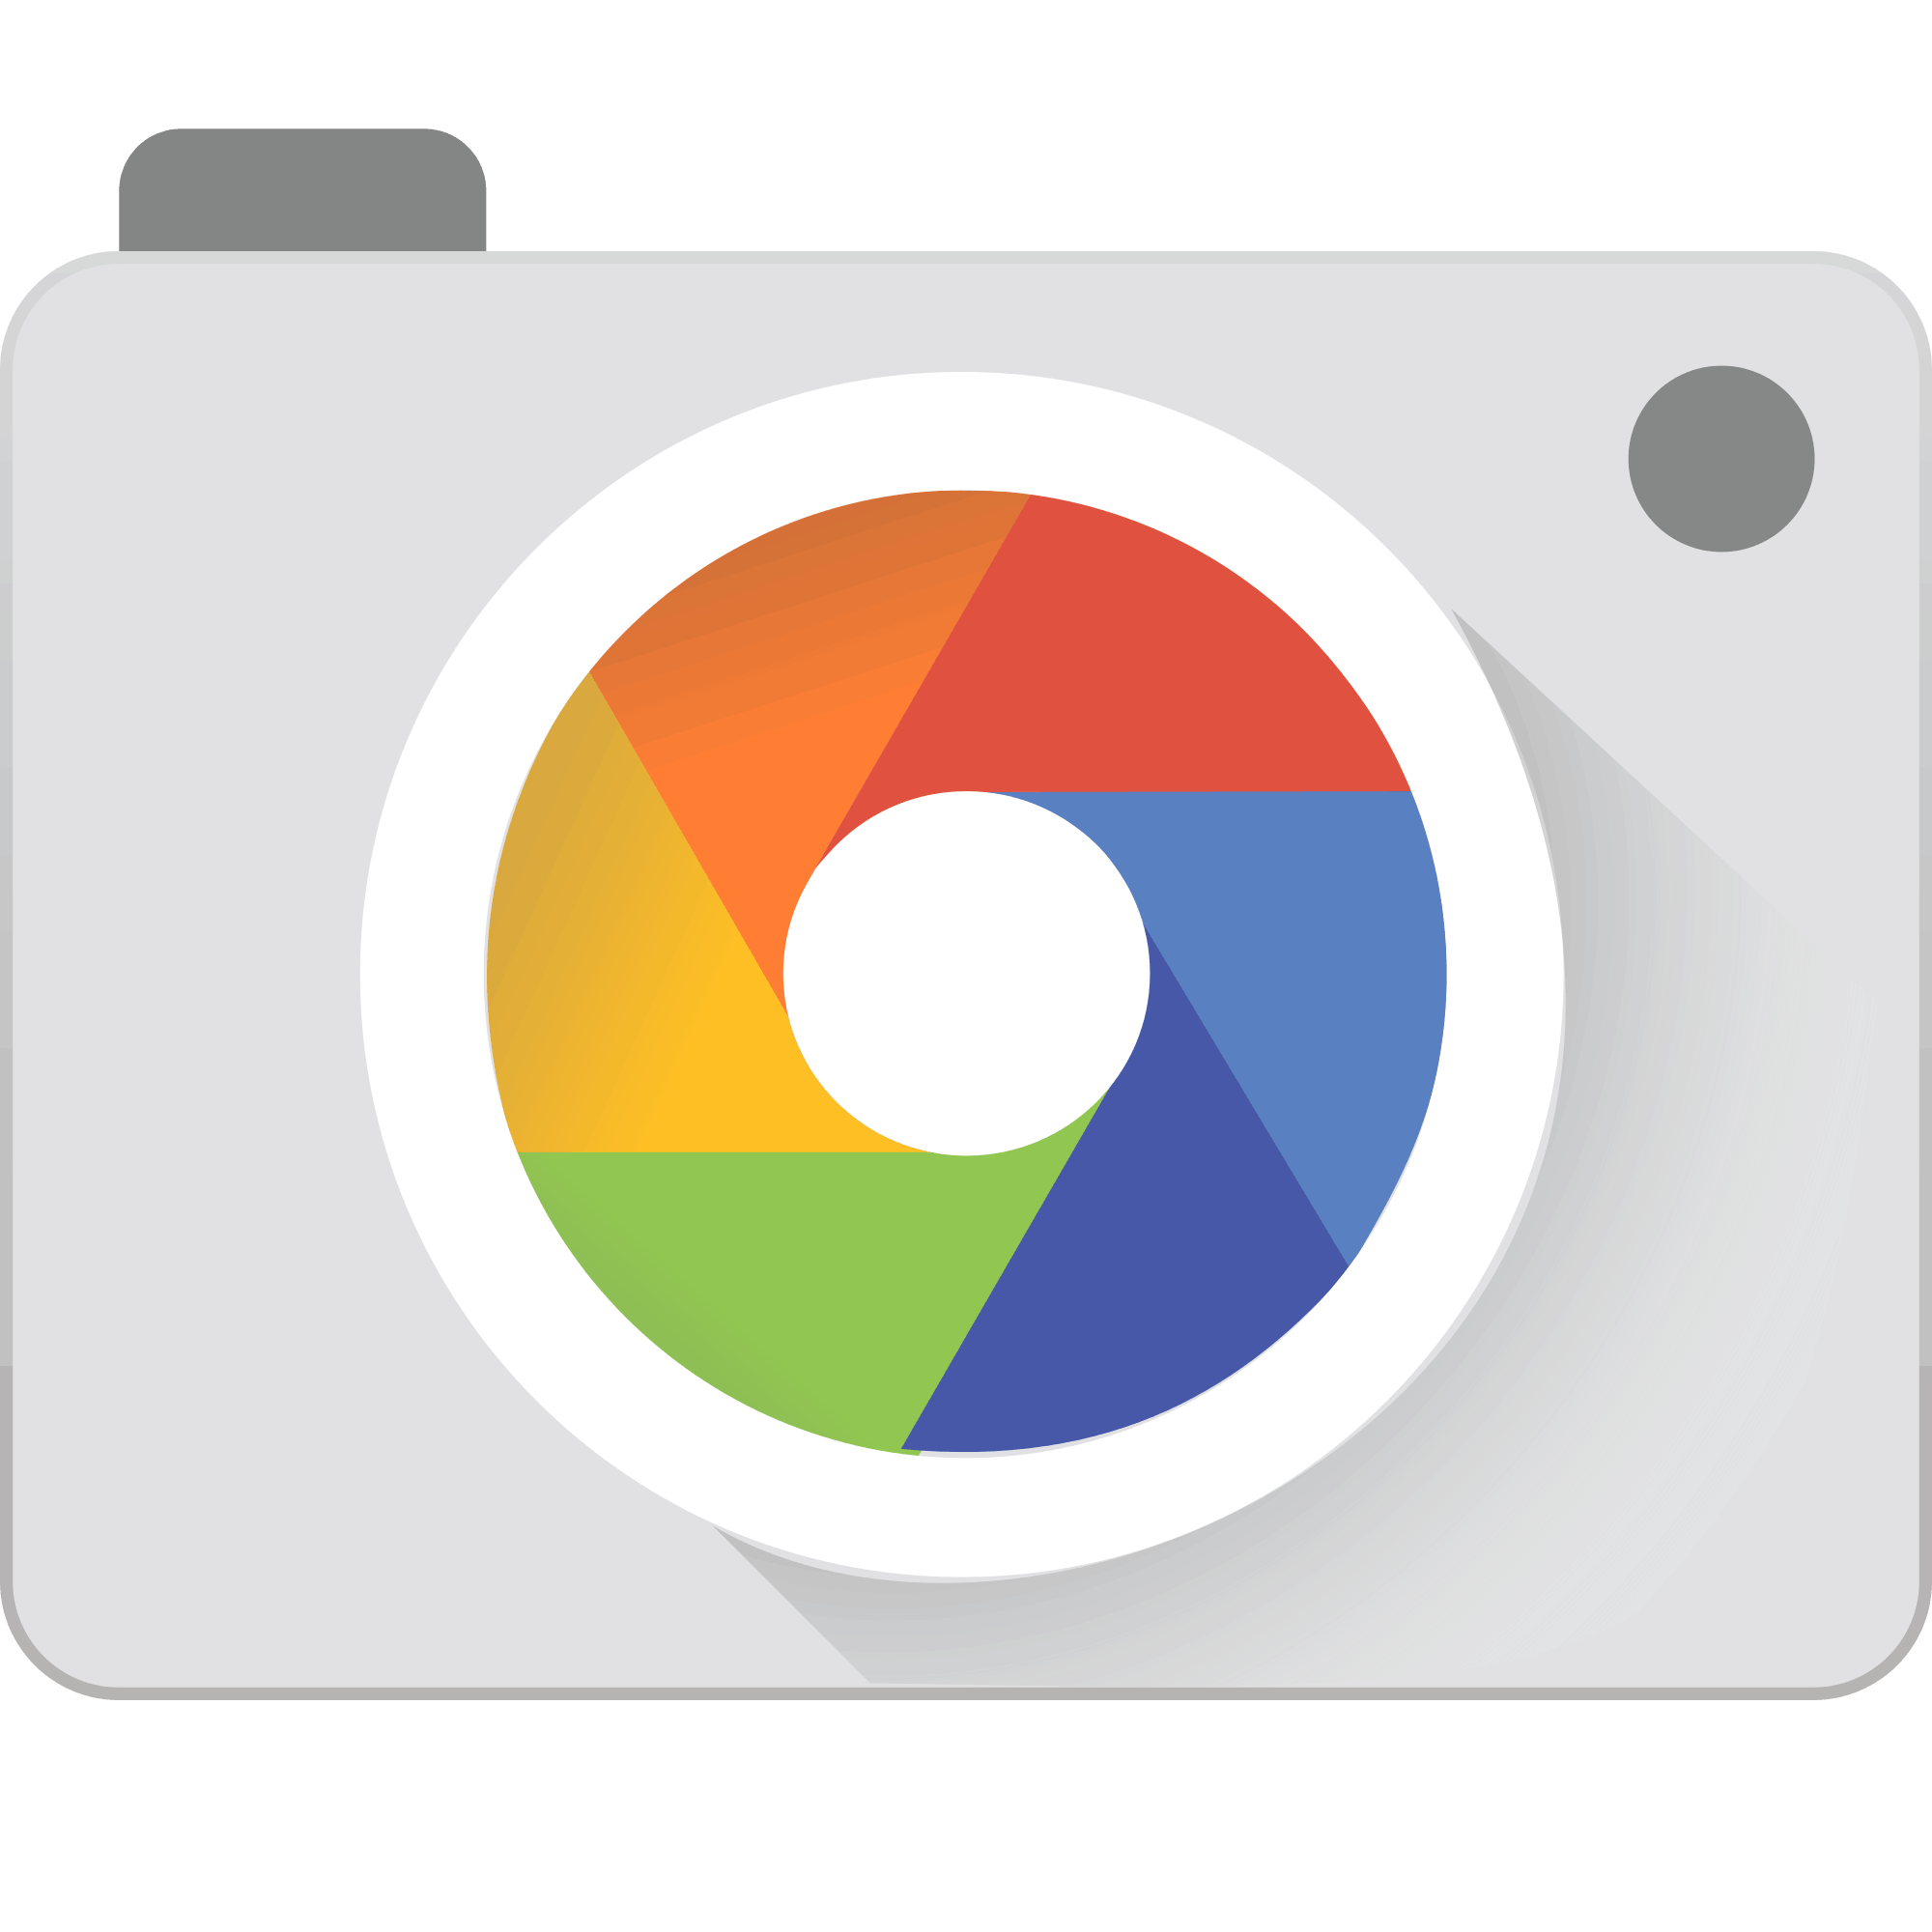 Google Camera APK For All Android Devices | ThemeFoxx